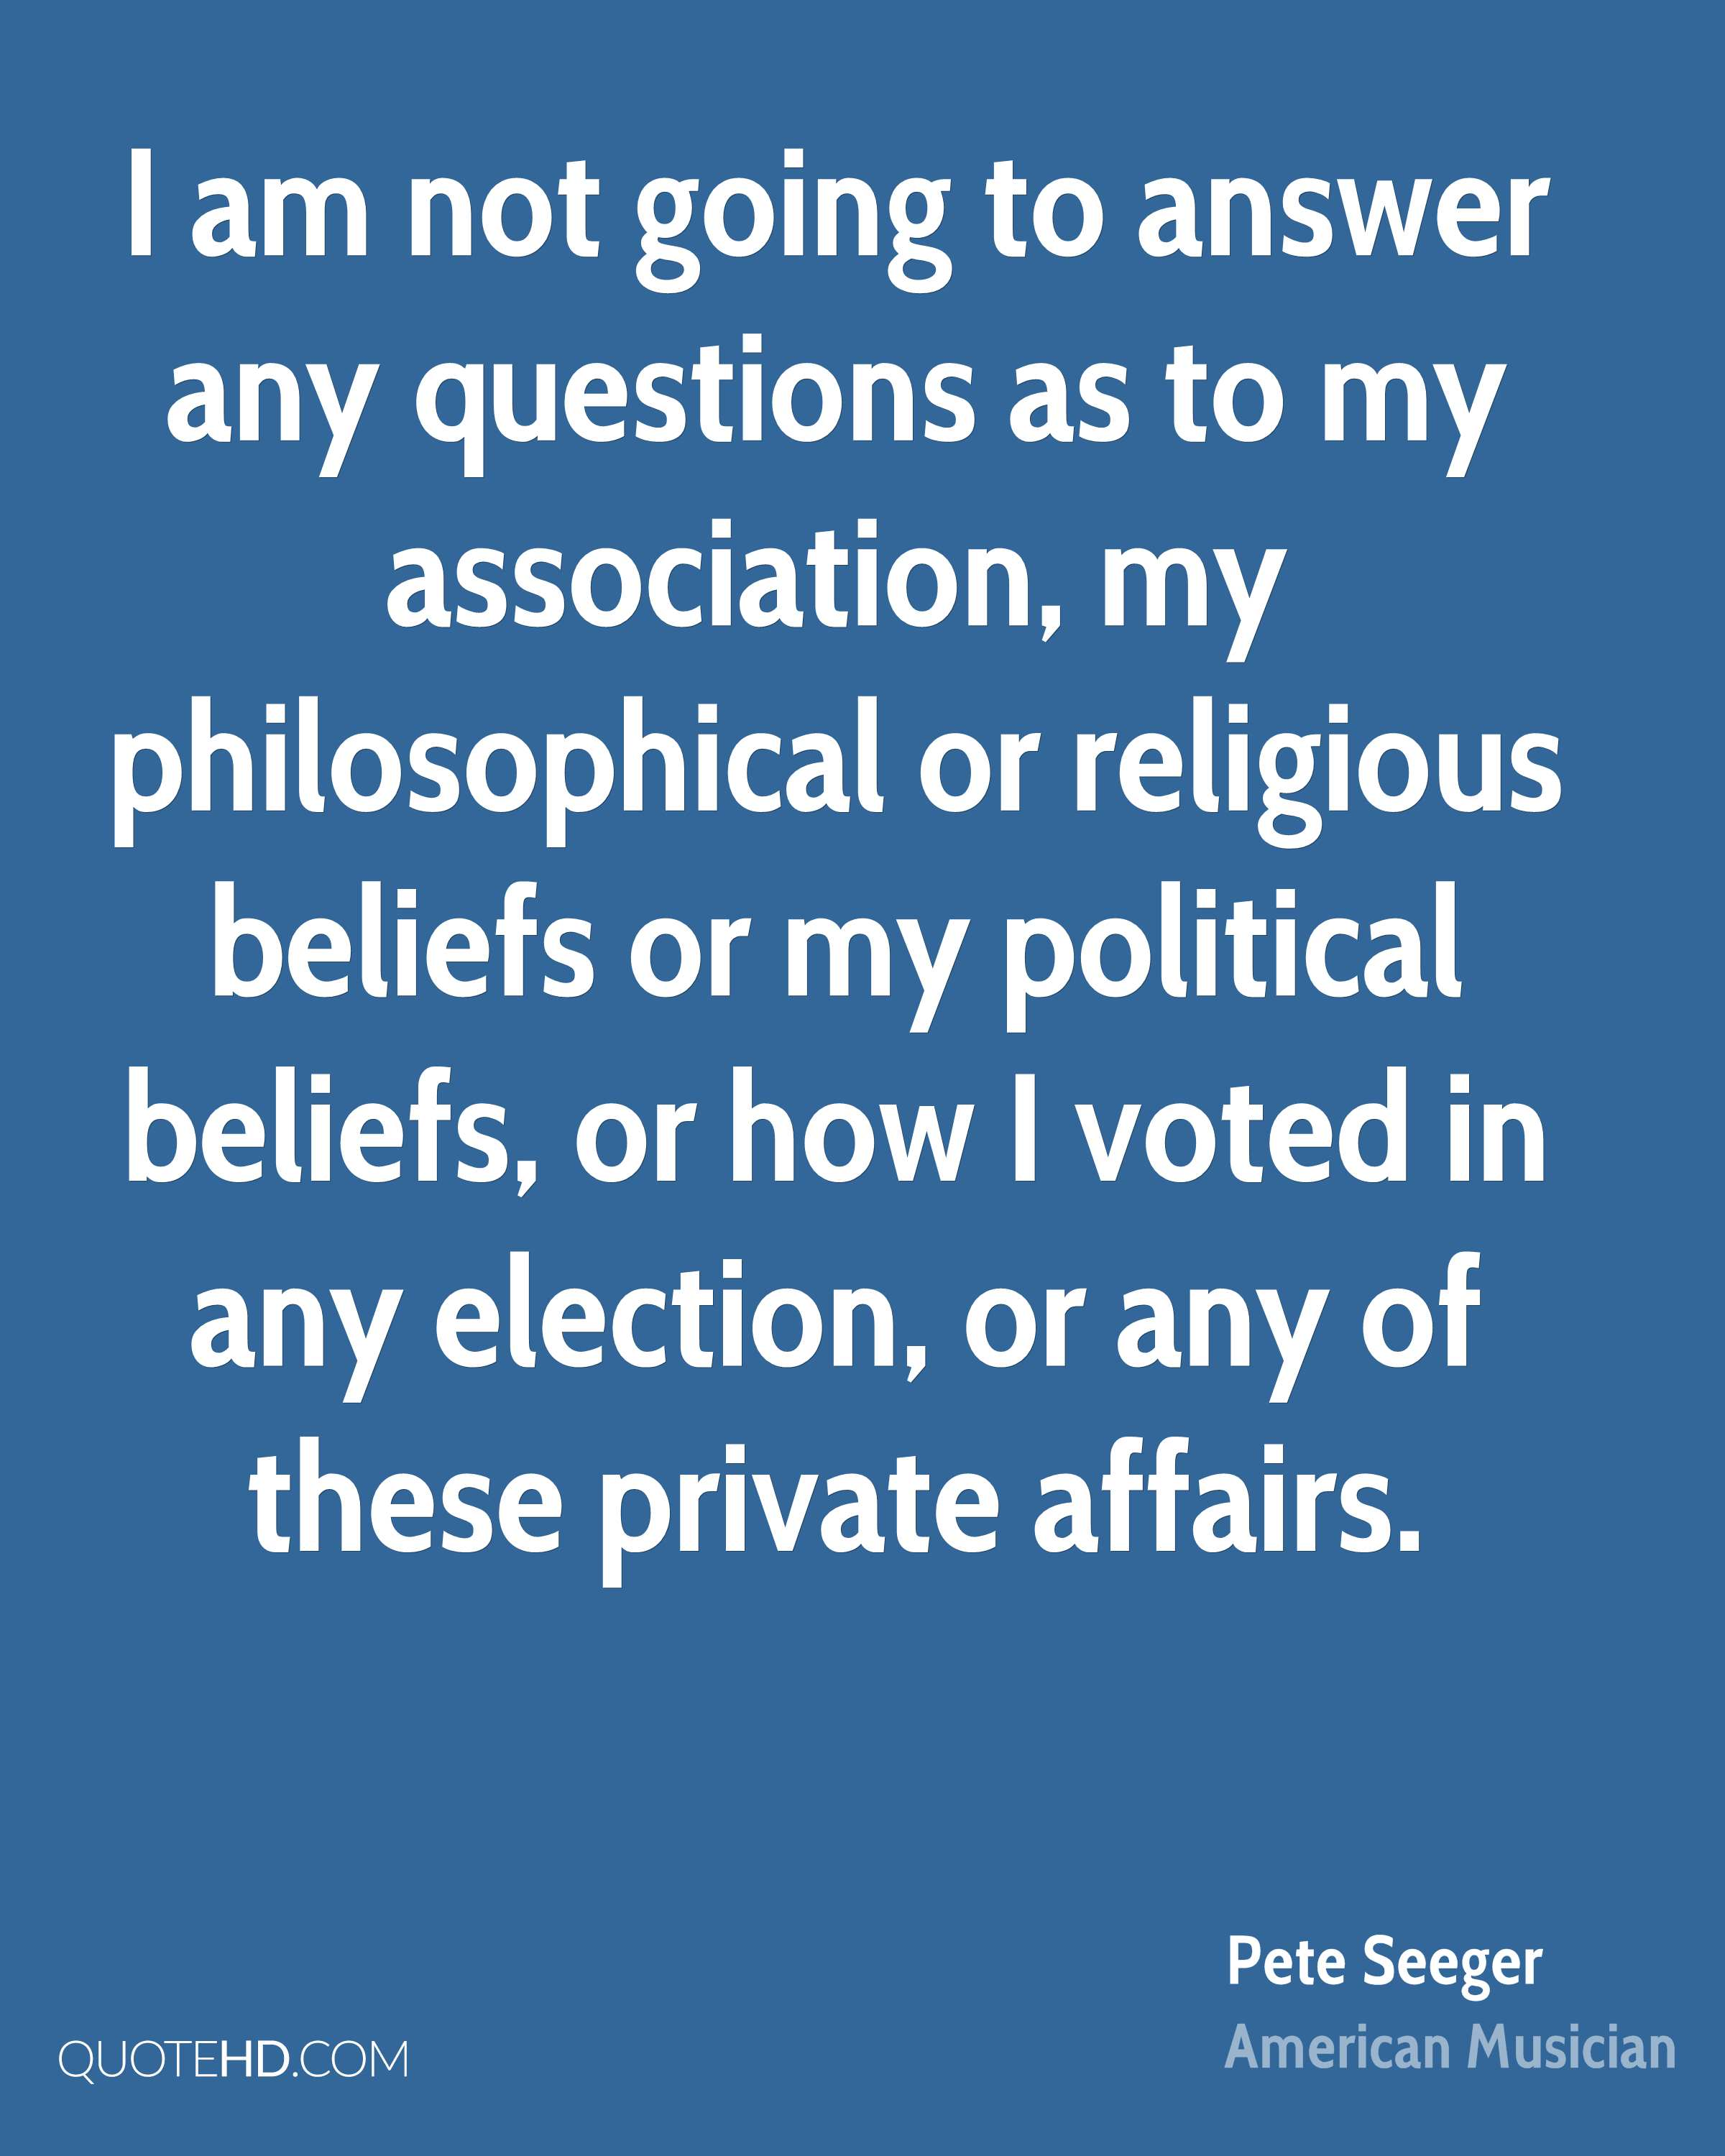 I am not going to answer any questions as to my association, my philosophical or religious beliefs or my political beliefs, or how I voted in any election, or any of these private affairs.